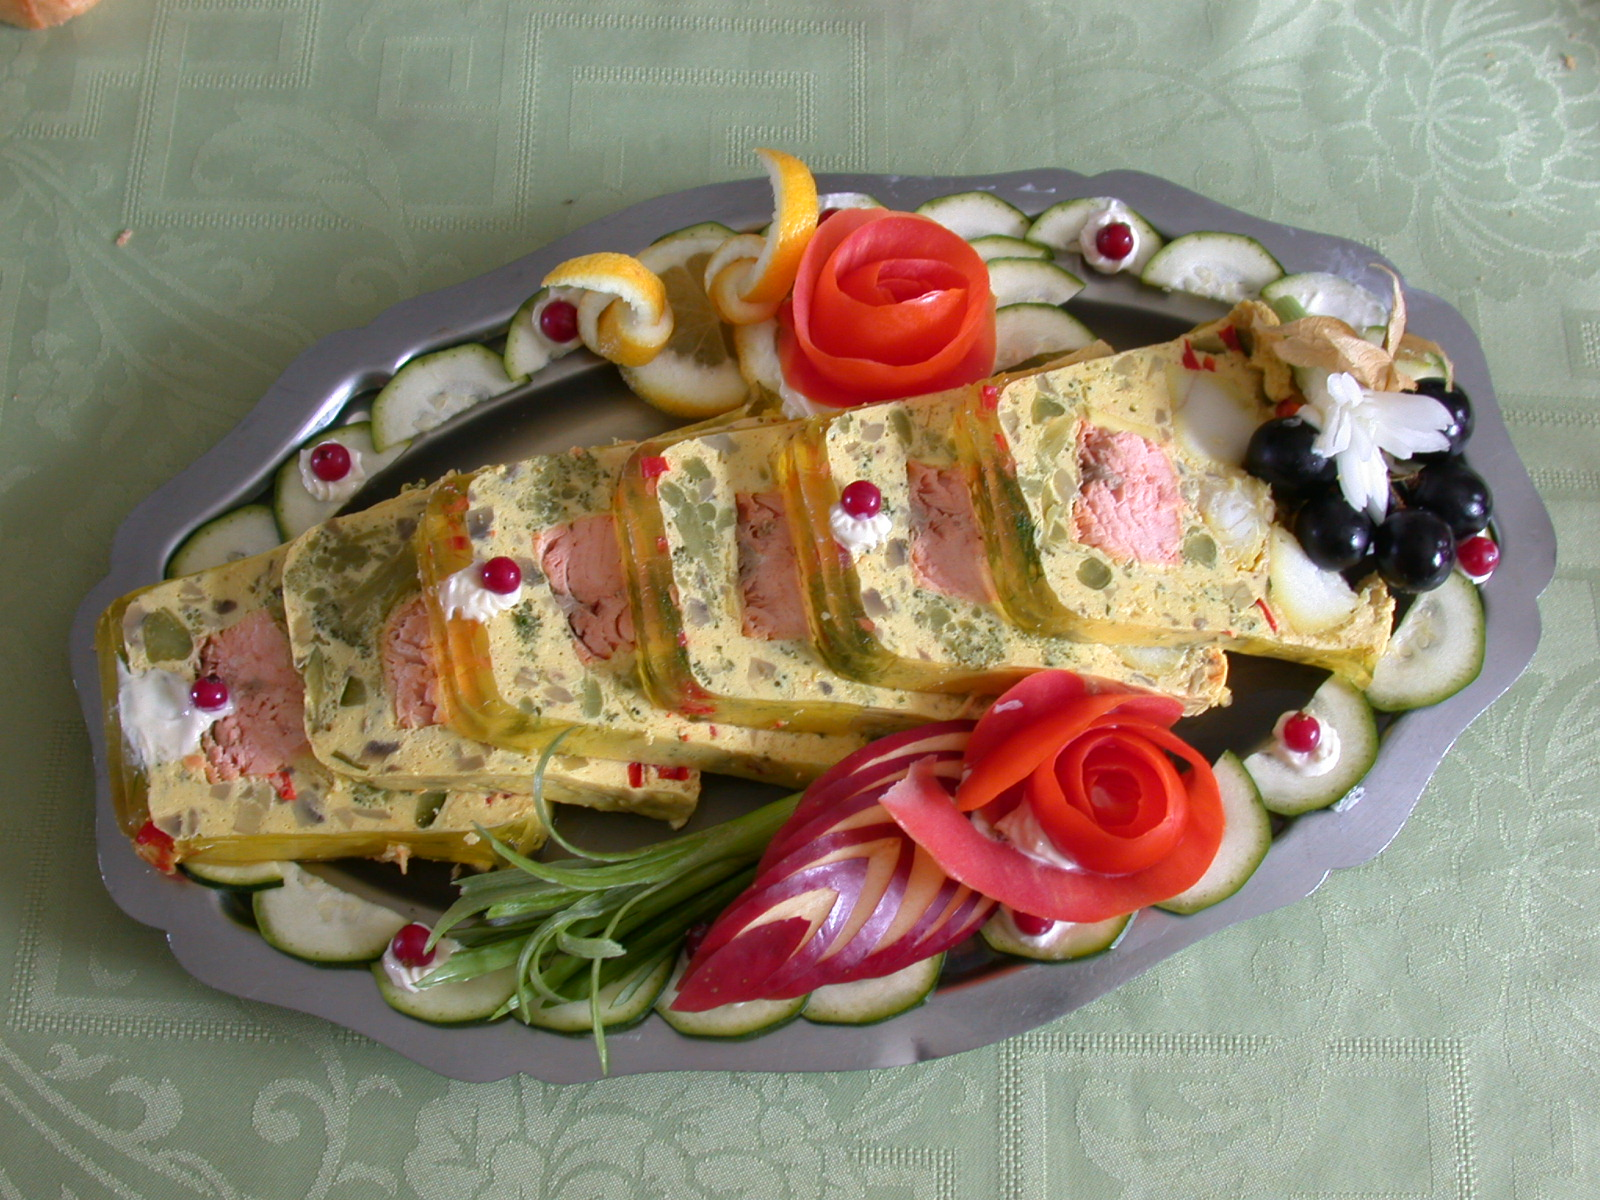 Terrine food wikipedia - French classical cuisine ...